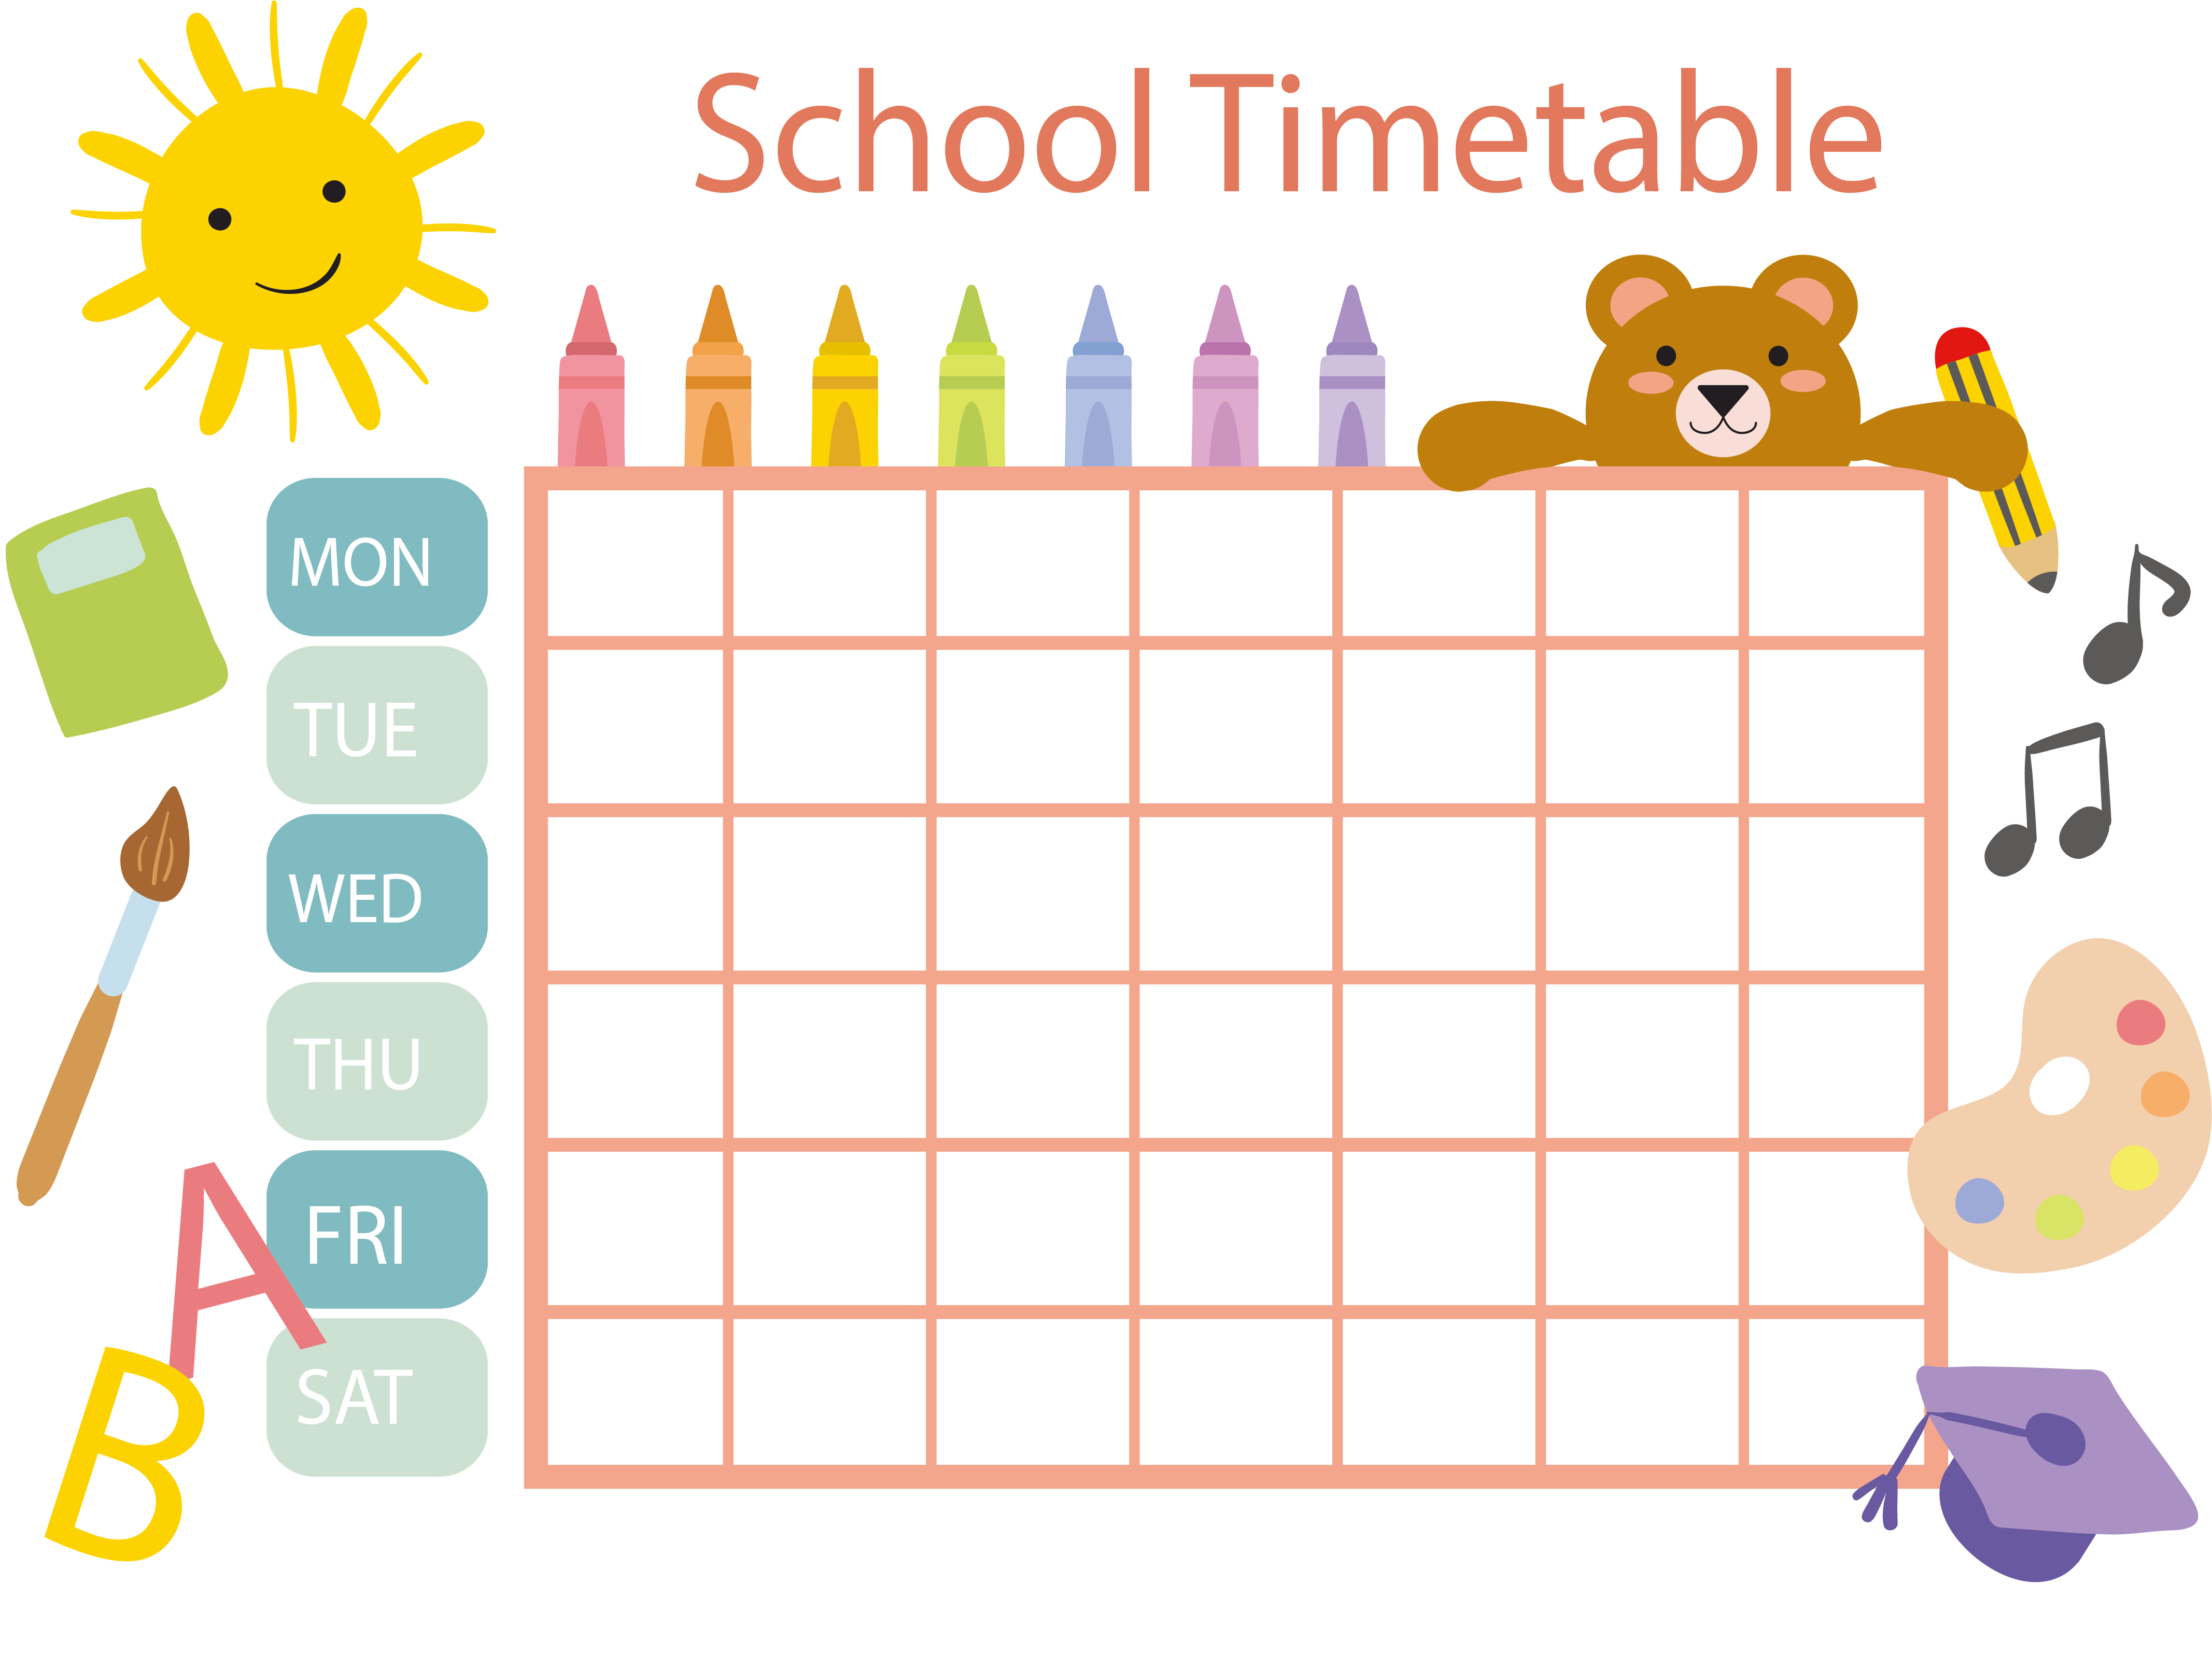 vector royalty free stock Schedule clipart. School timetable template clip.